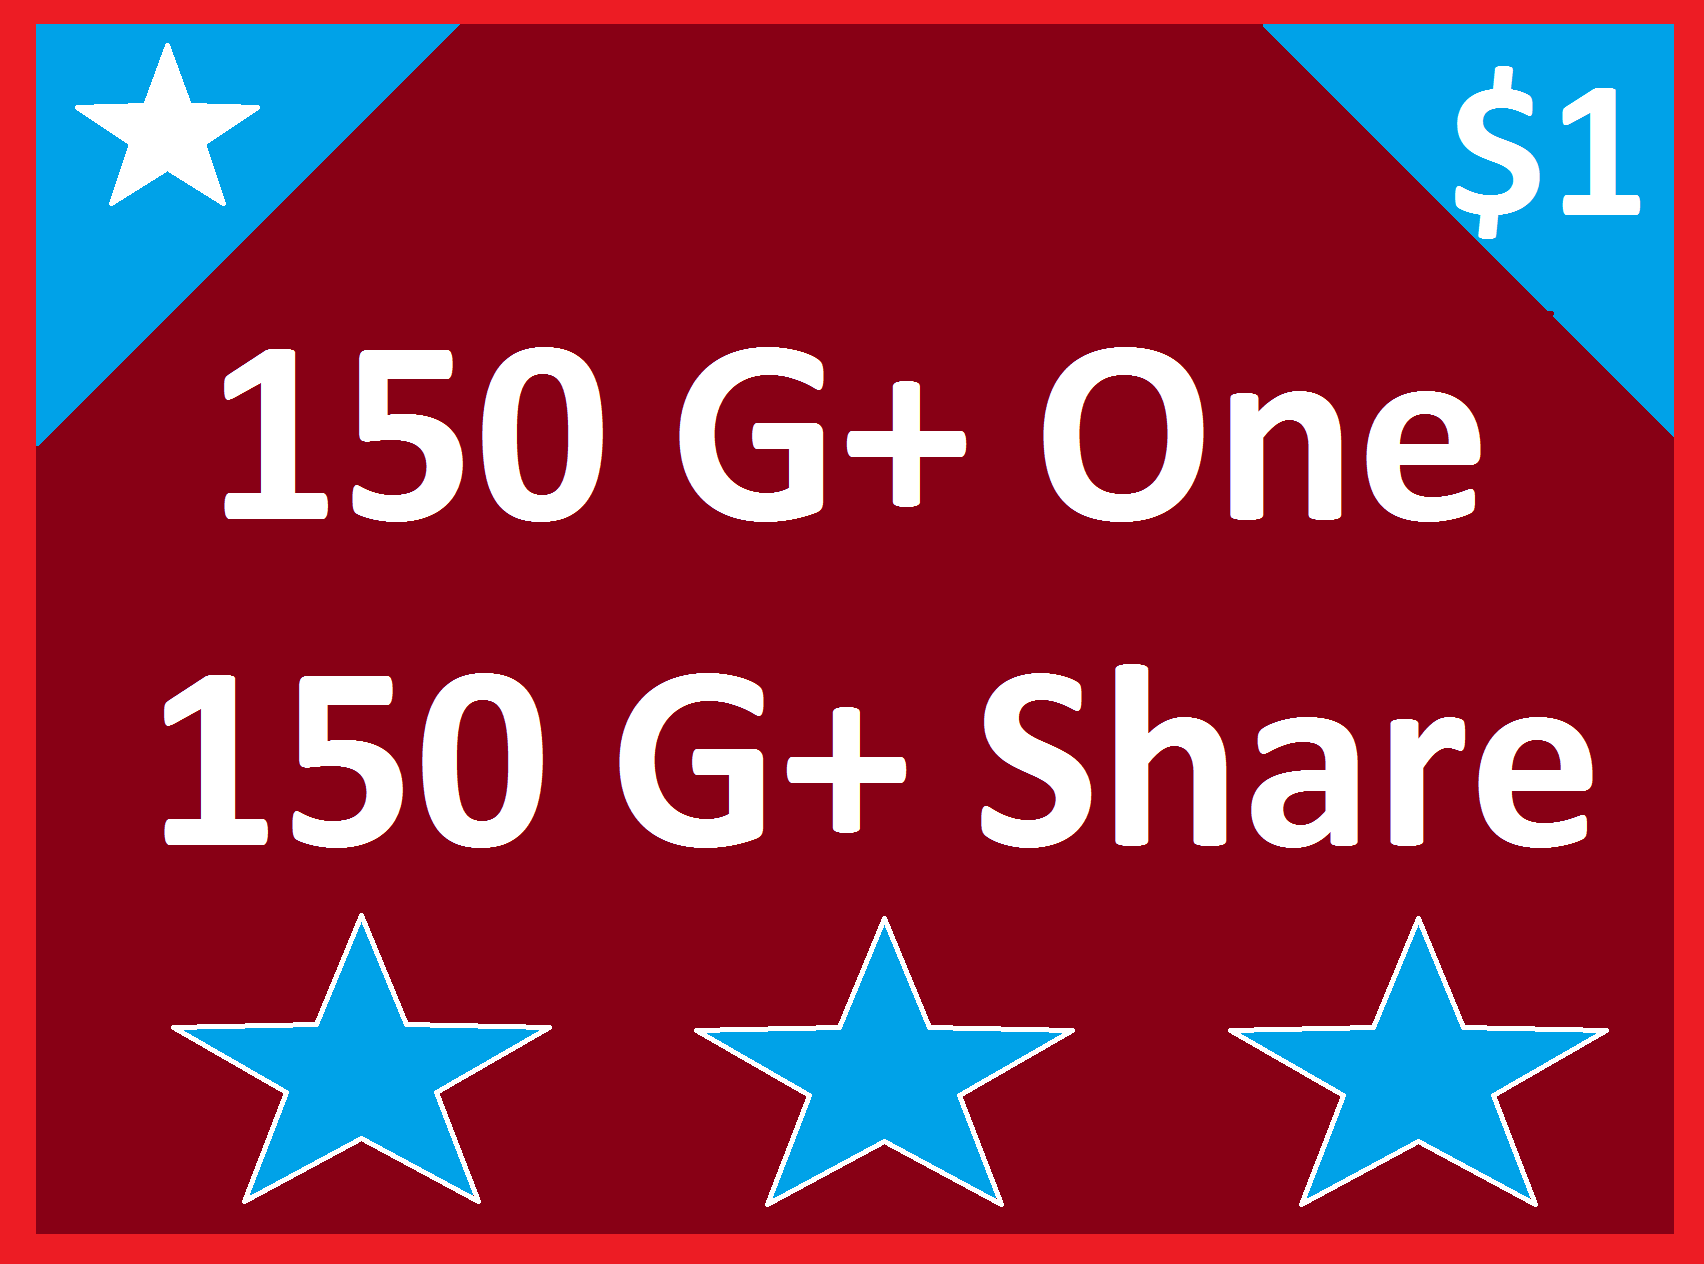 150 Google Plus One + 150 Google Plus Share Social Signals Improve Your Website Ranking